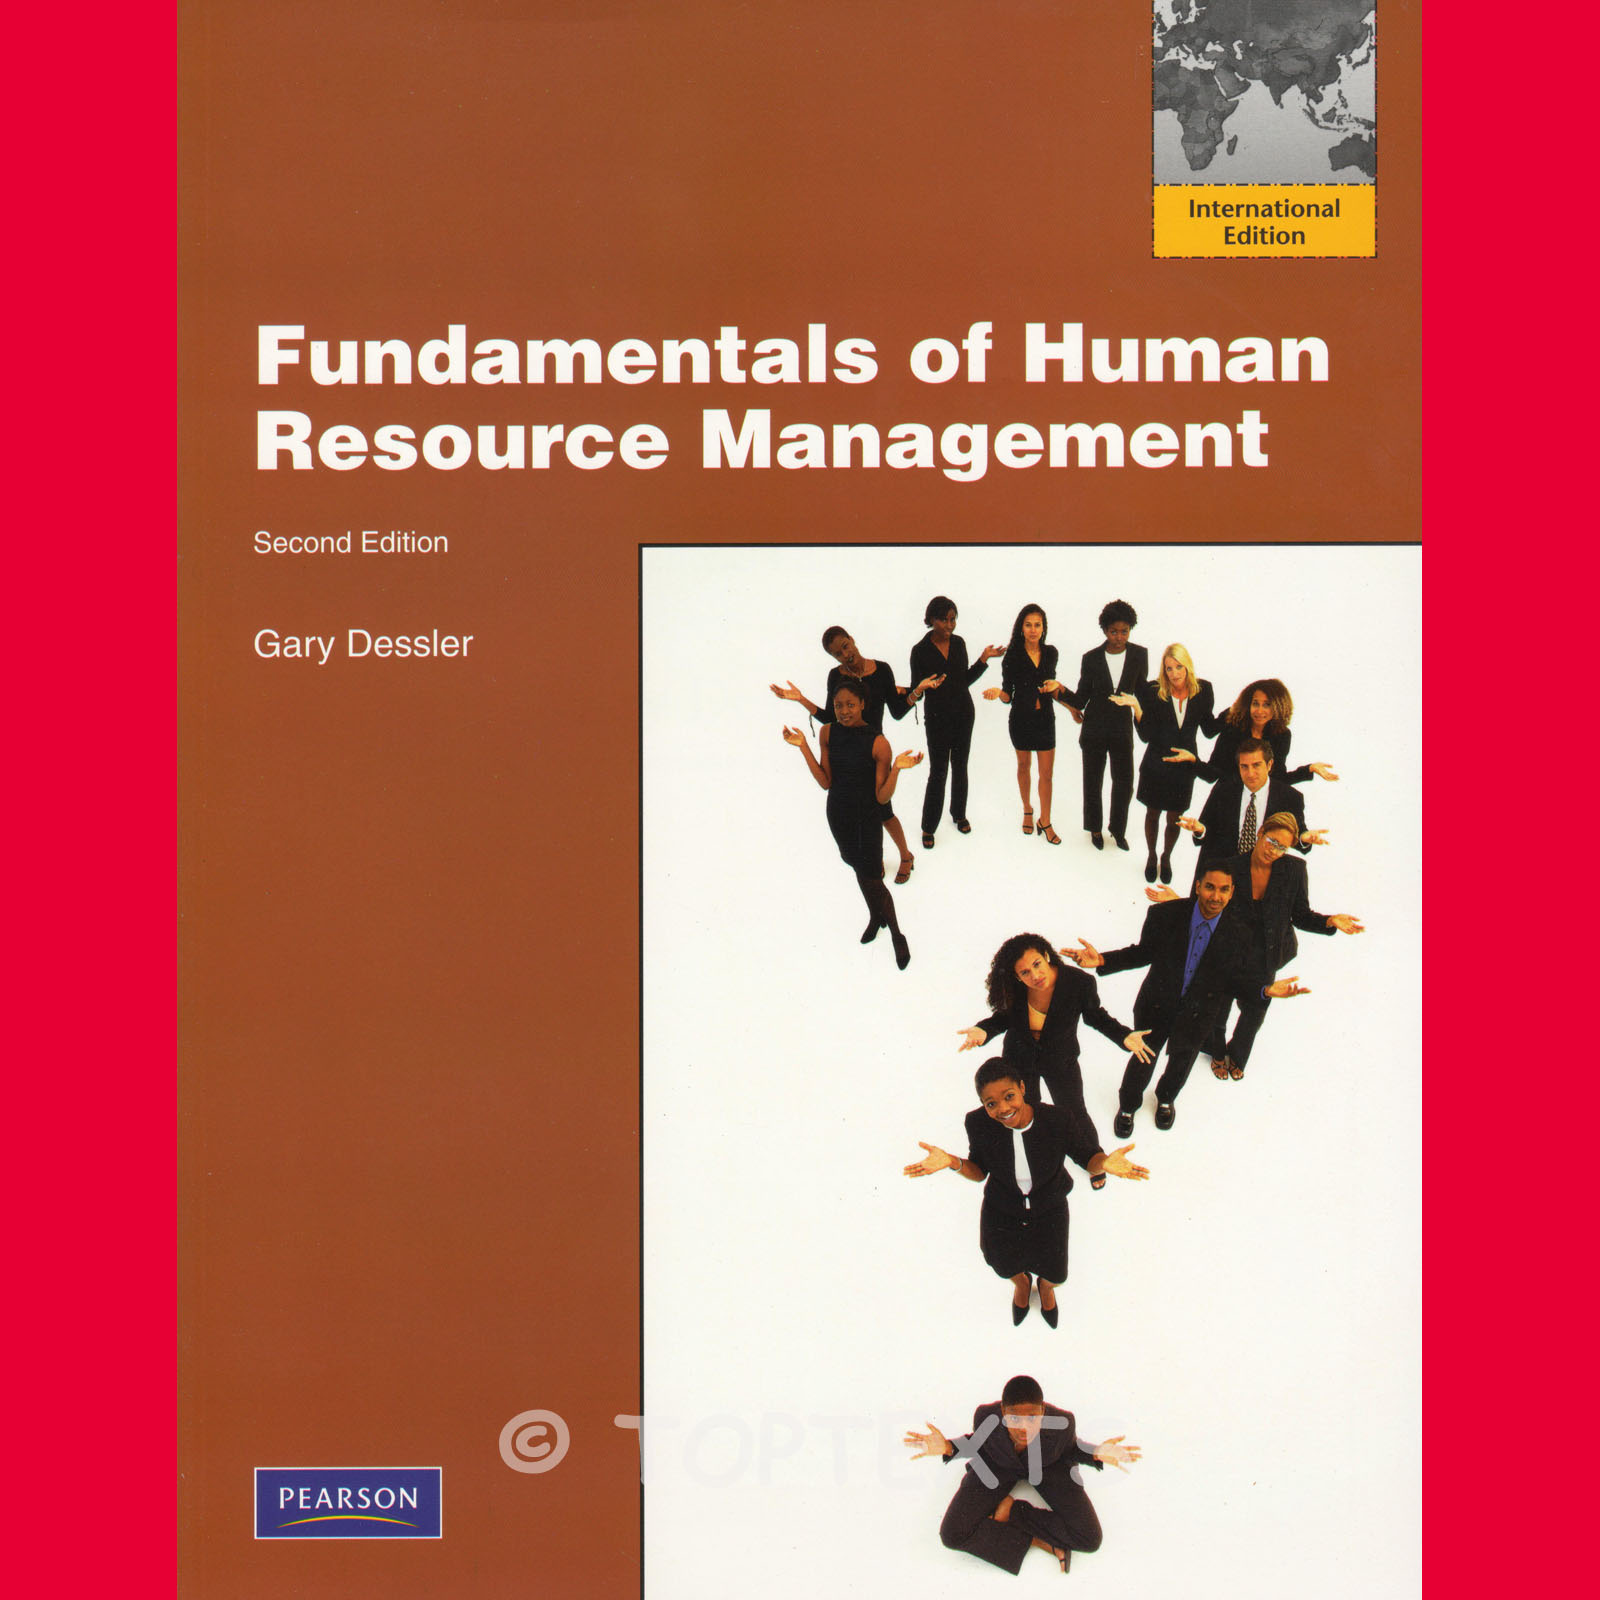 fundamentals of hrm Case study analysis provides you the opportunity to enhance your understanding  of hrm concepts by applying them to realistic scenarios.